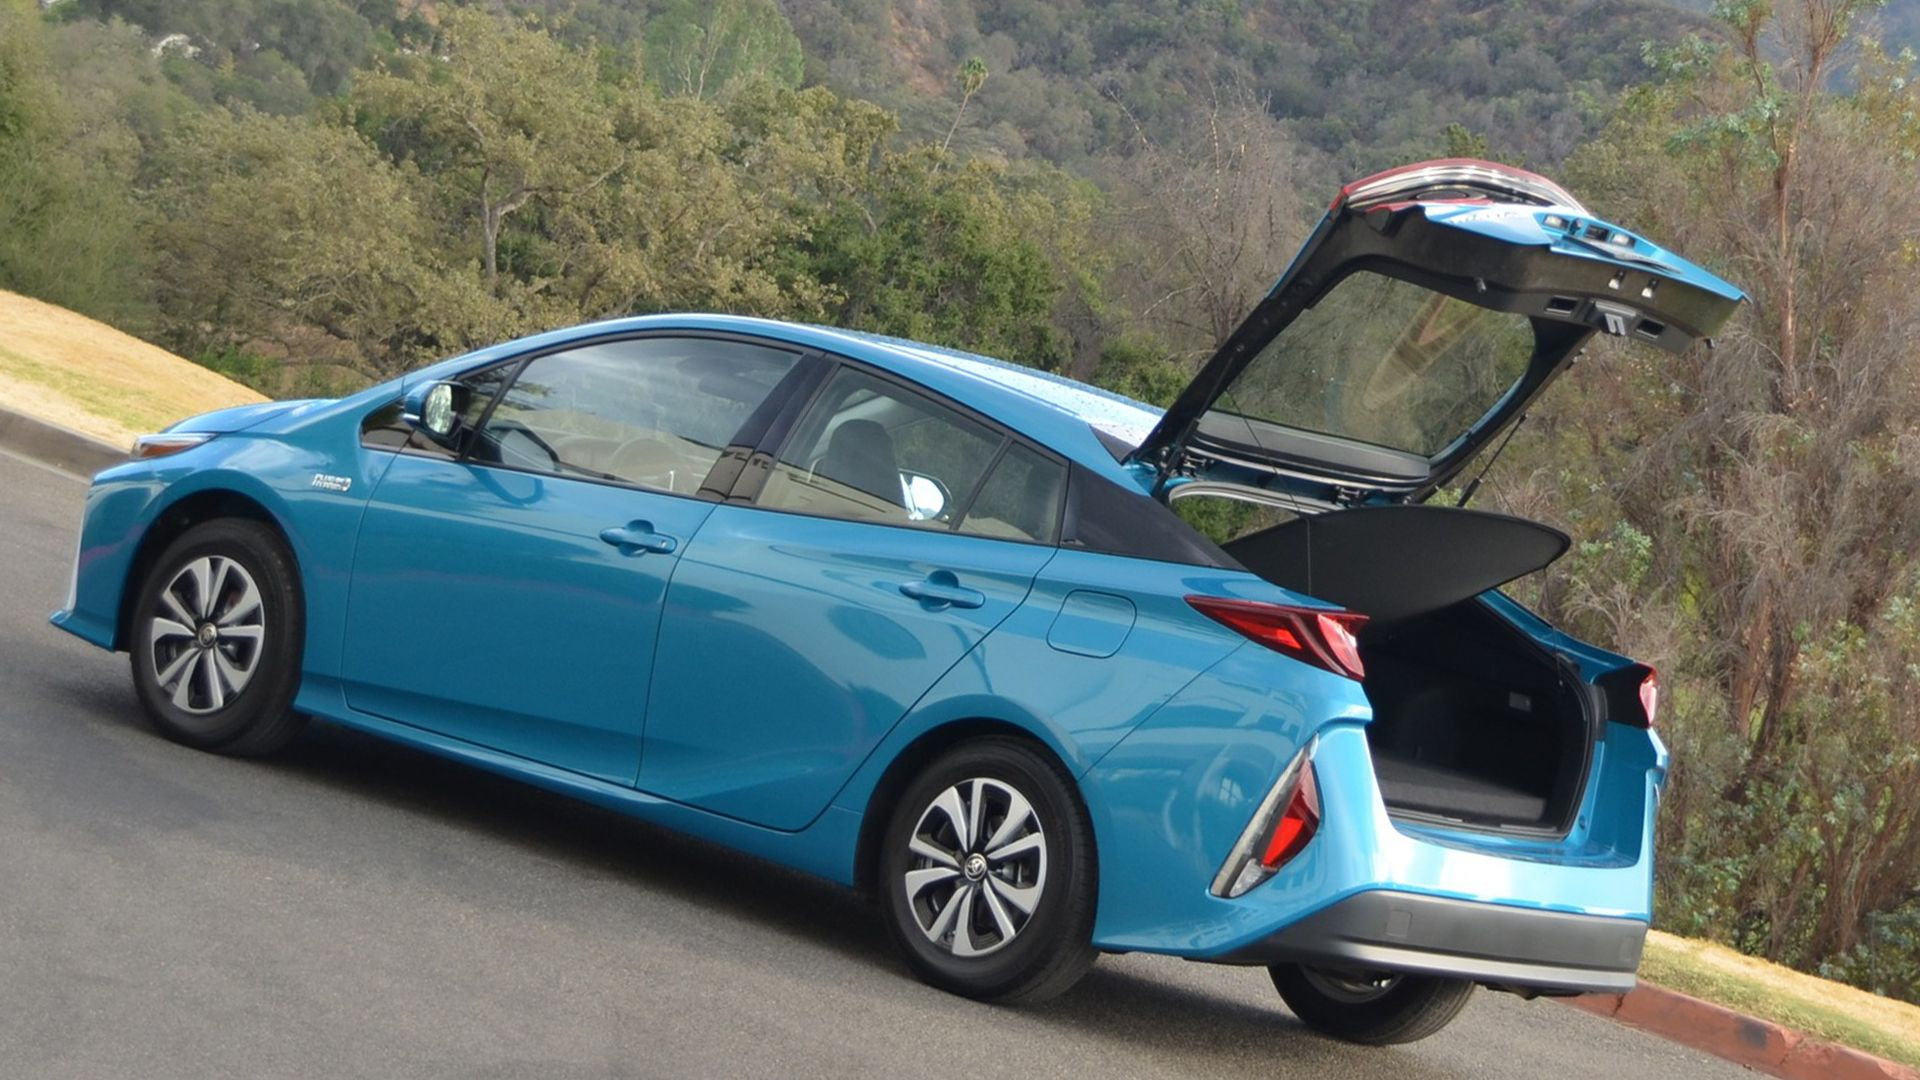 New 2019 Toyota Prius Prime Wallpaper Hd Desktop